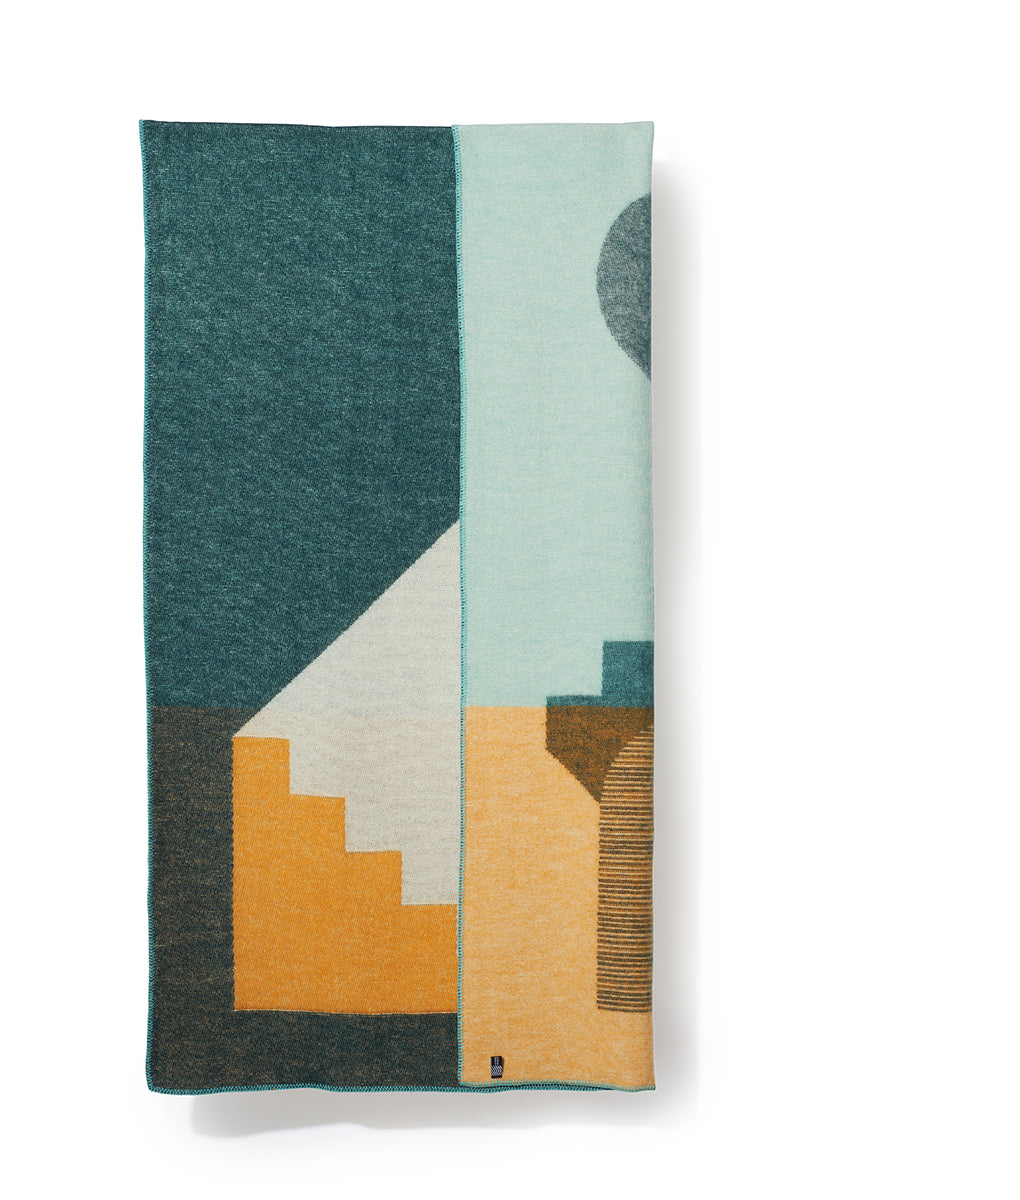 Aspect Wool Blanket by Yanvi Ha